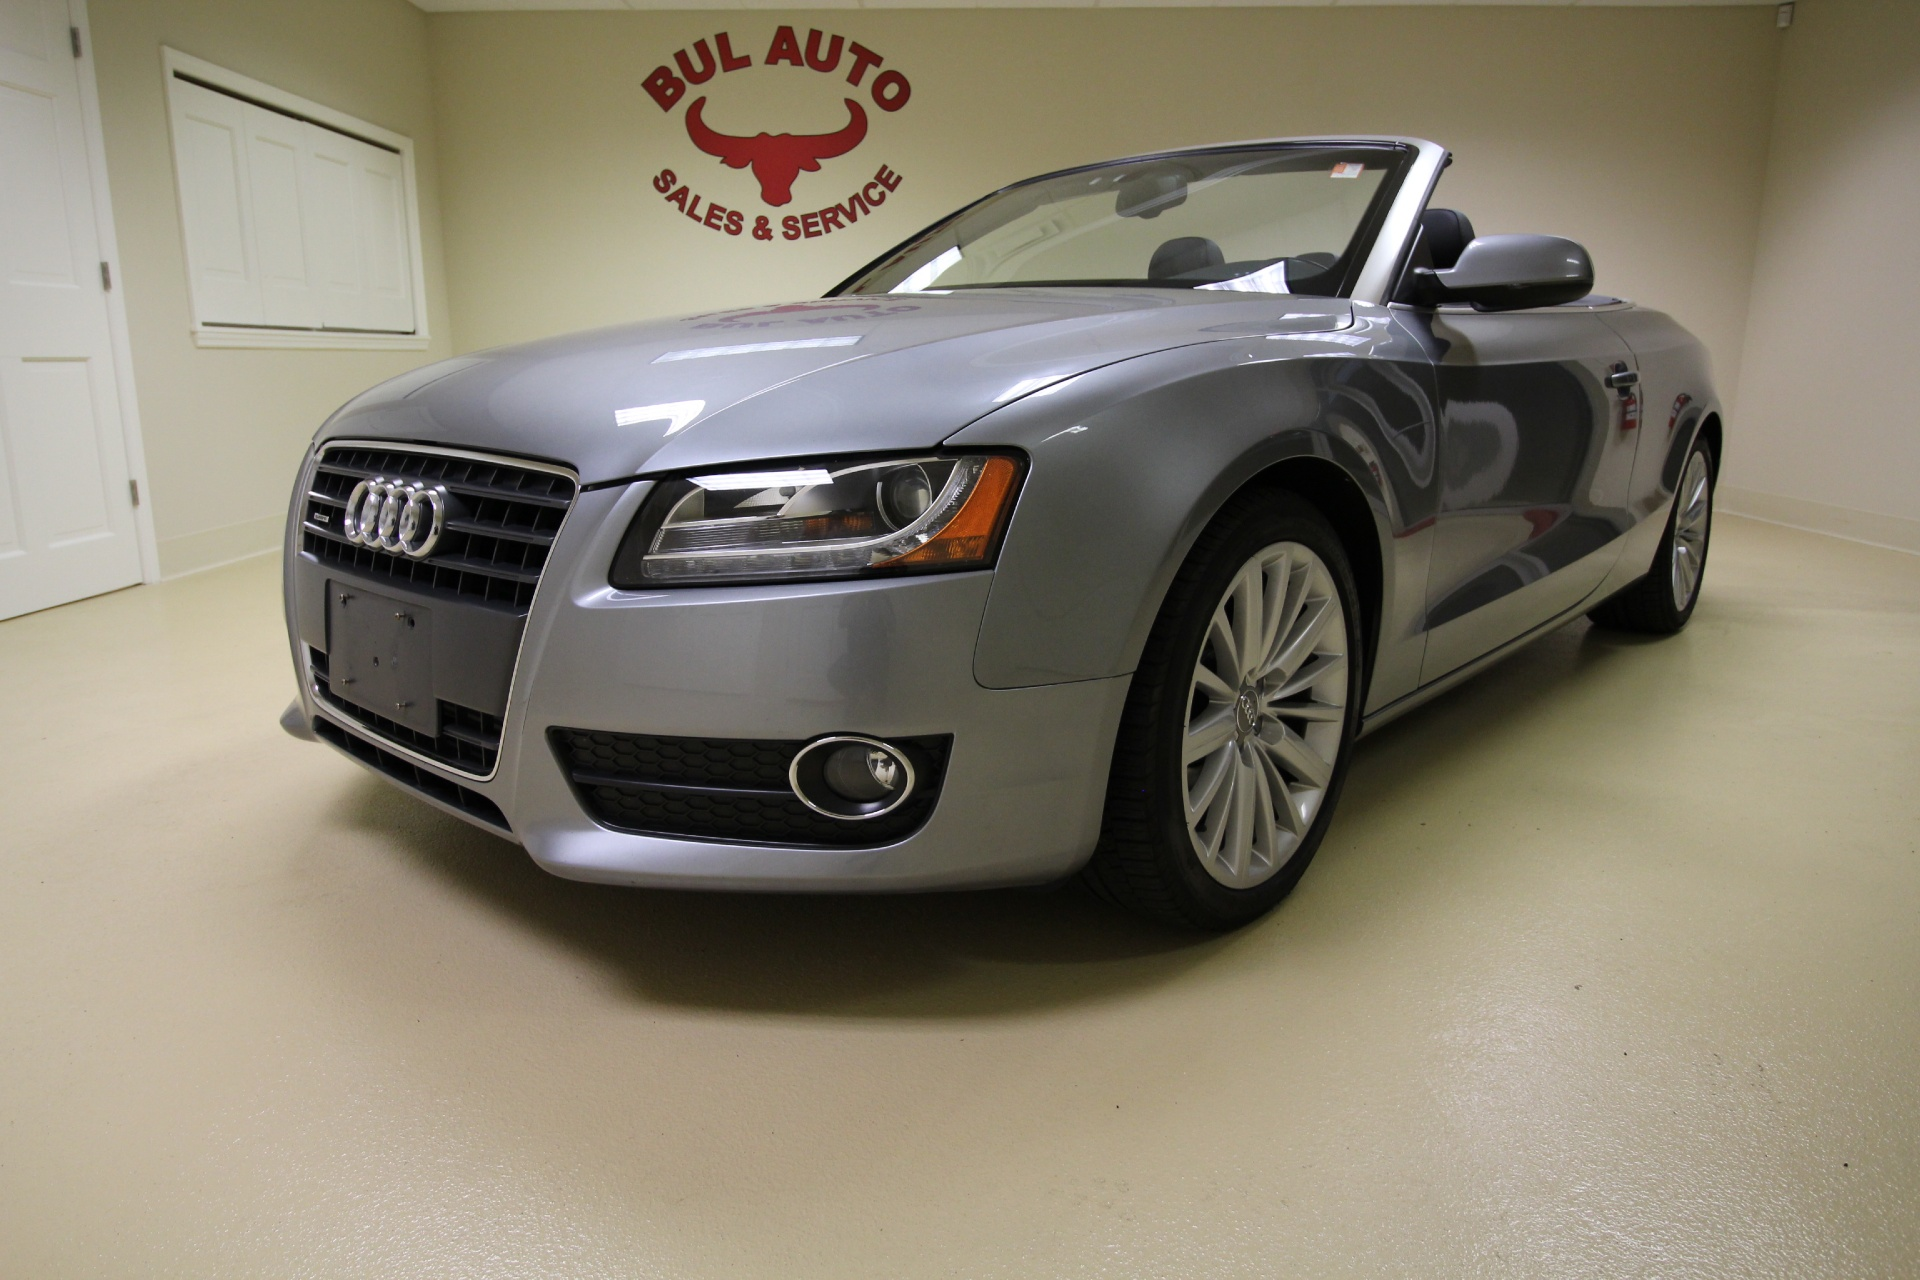 2010 audi a5 2 0t quattro premium plus 1 owner like new stock 16096 for sale near albany ny. Black Bedroom Furniture Sets. Home Design Ideas